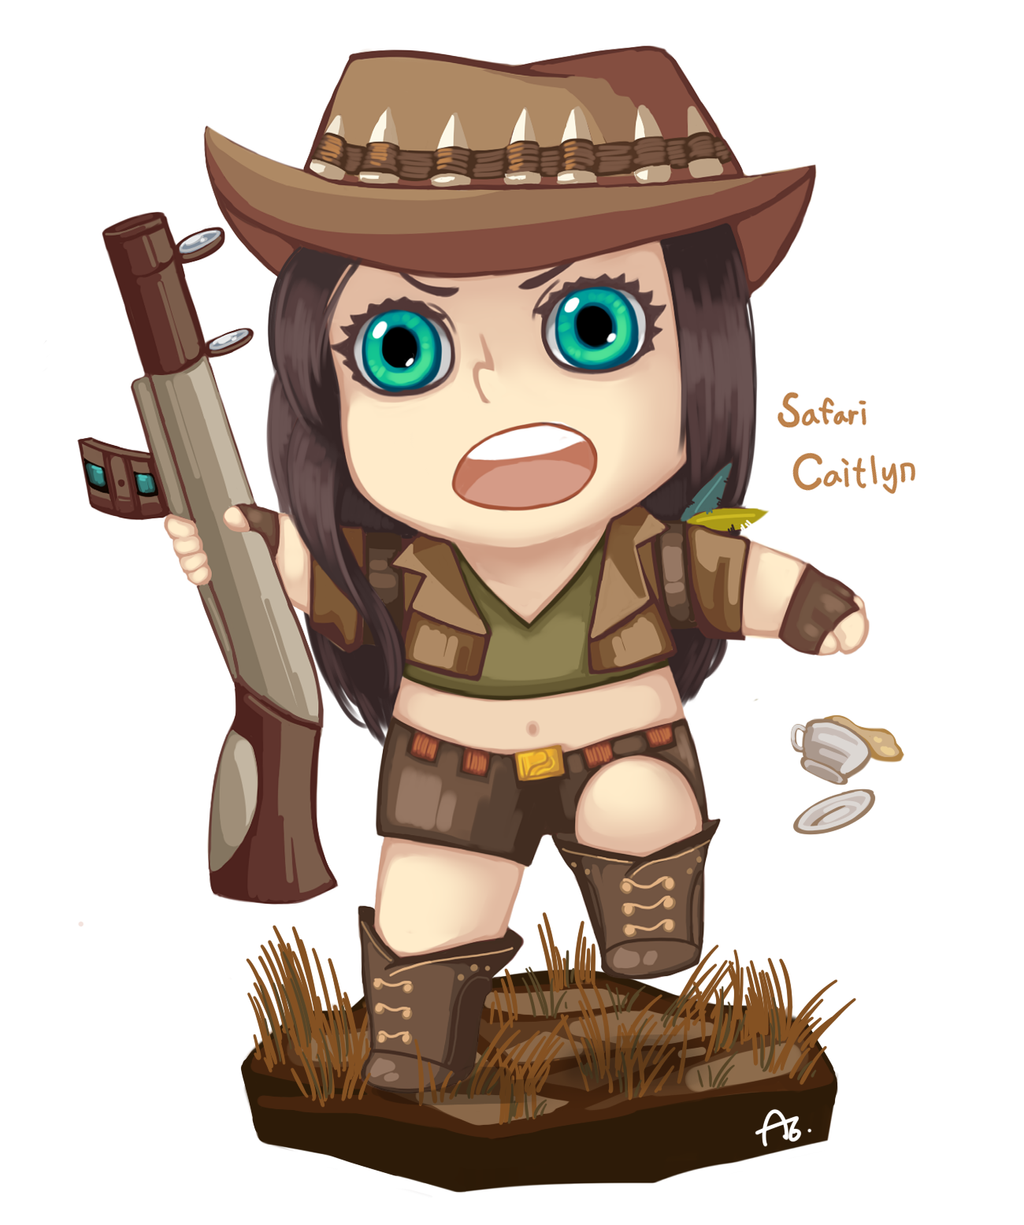 safari caitlyn sd by Nanghyang on DeviantArt